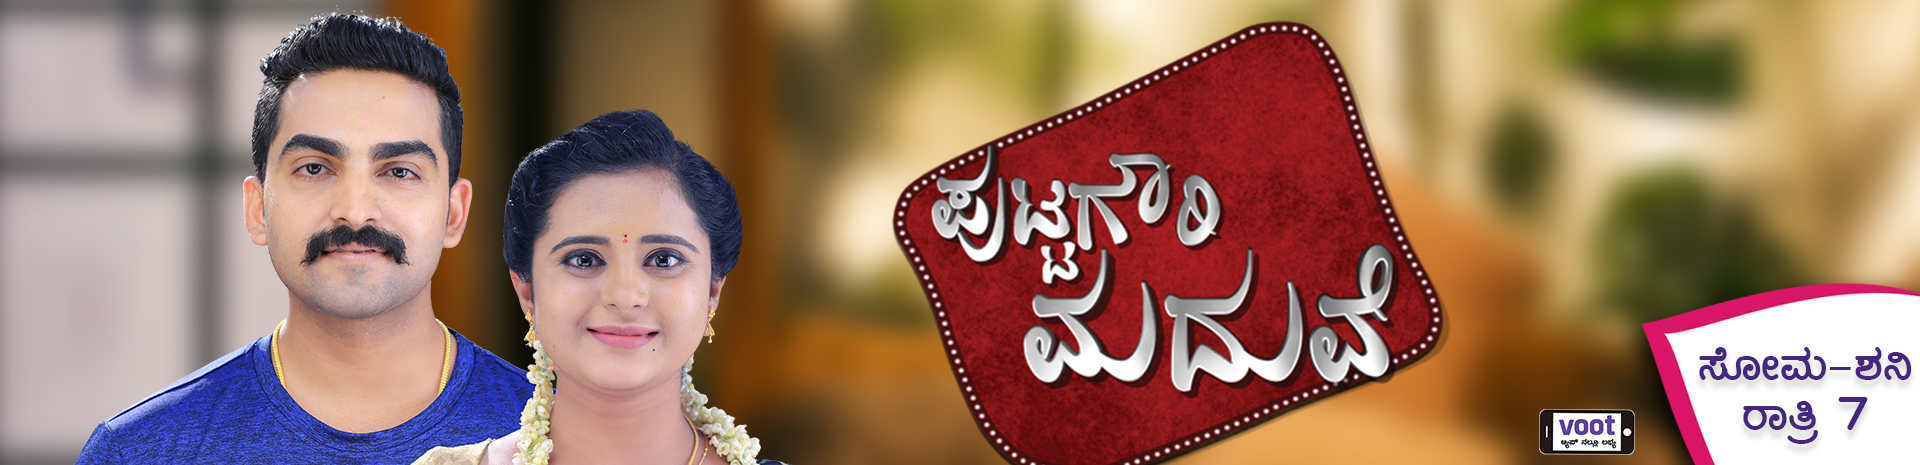 Watch the evil of child marriage in Putta Gowri Maduve on